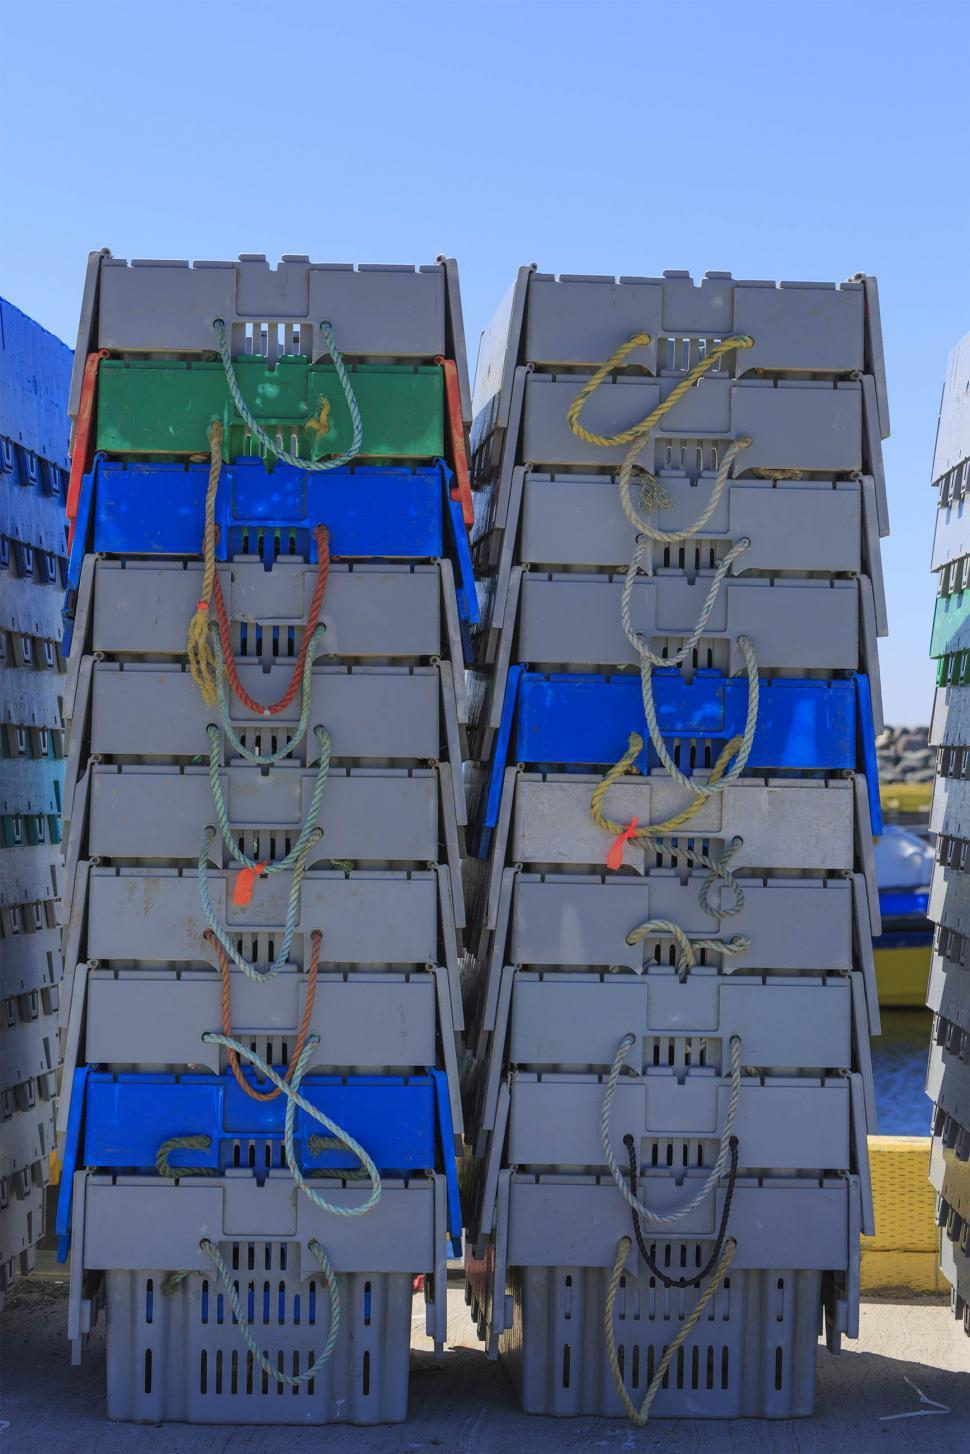 Download Free Stock HD Photo of Lobster storage boxes Online